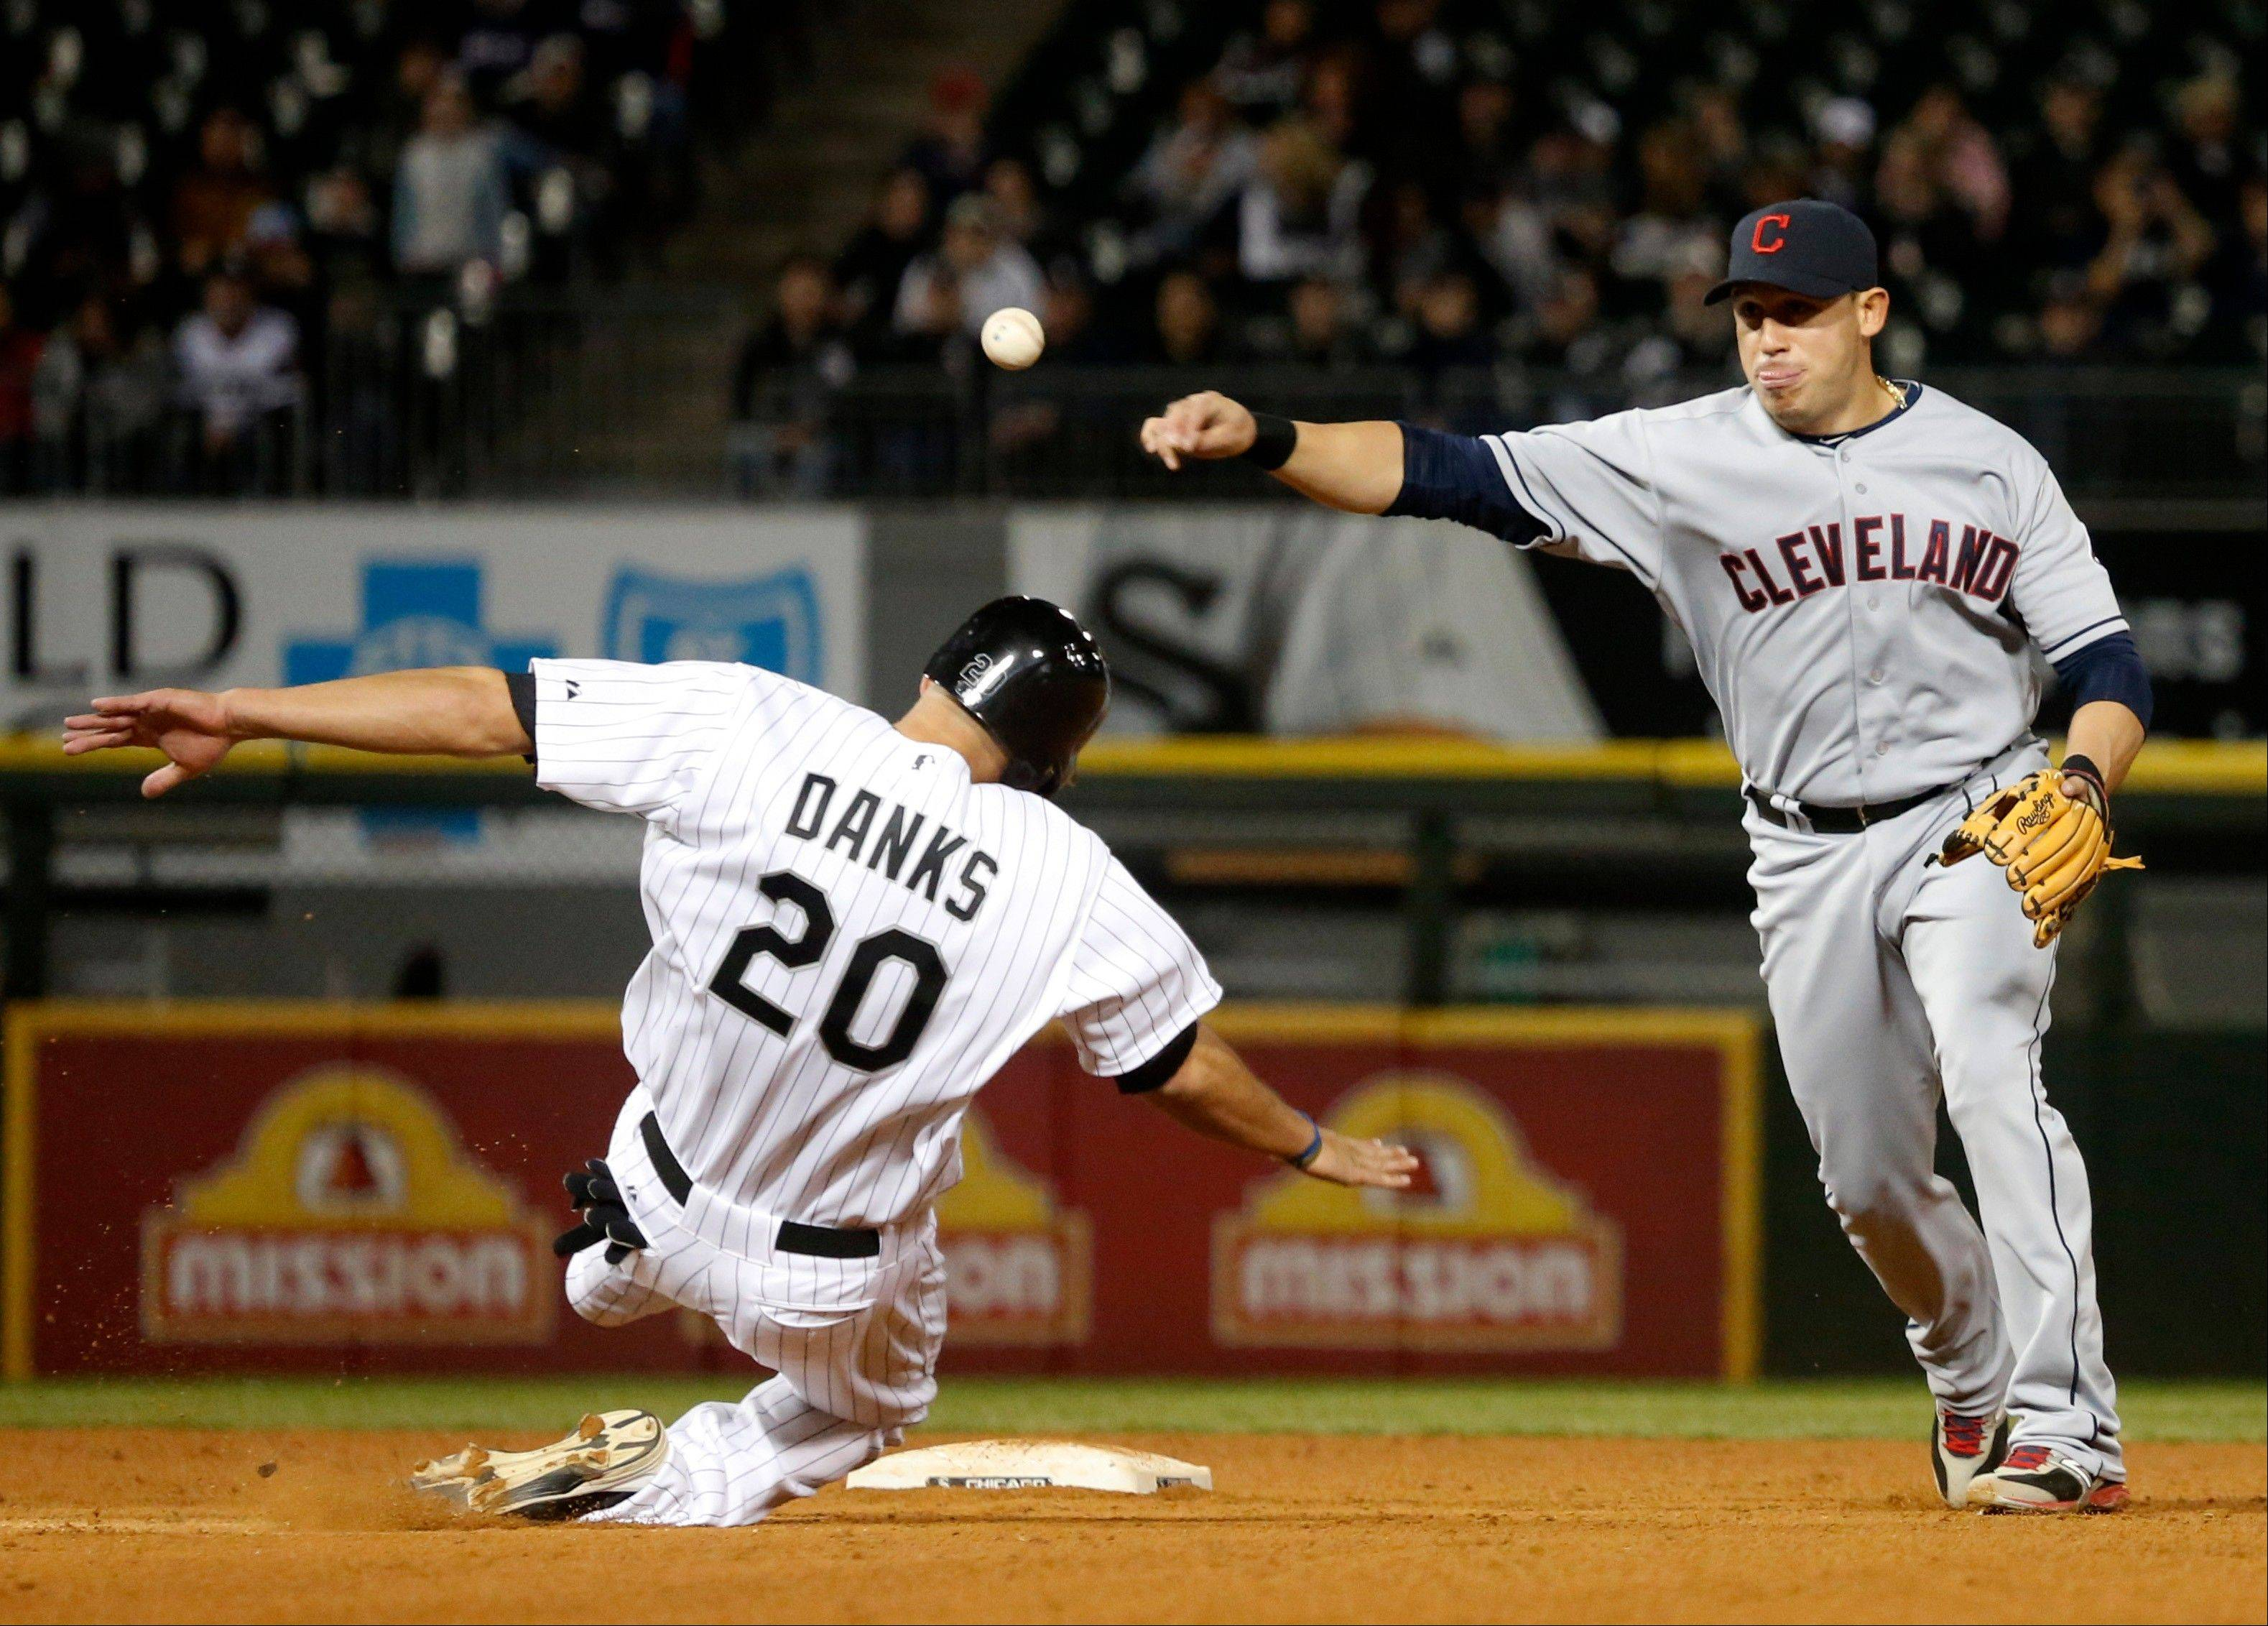 Cleveland shortstop Asdrubal Cabrera turns a double play, forcing Chicago's Jordan Danks at second and getting Alejandro De Aza at first, during the seventh inning Monday at U.S. Cellular Field.